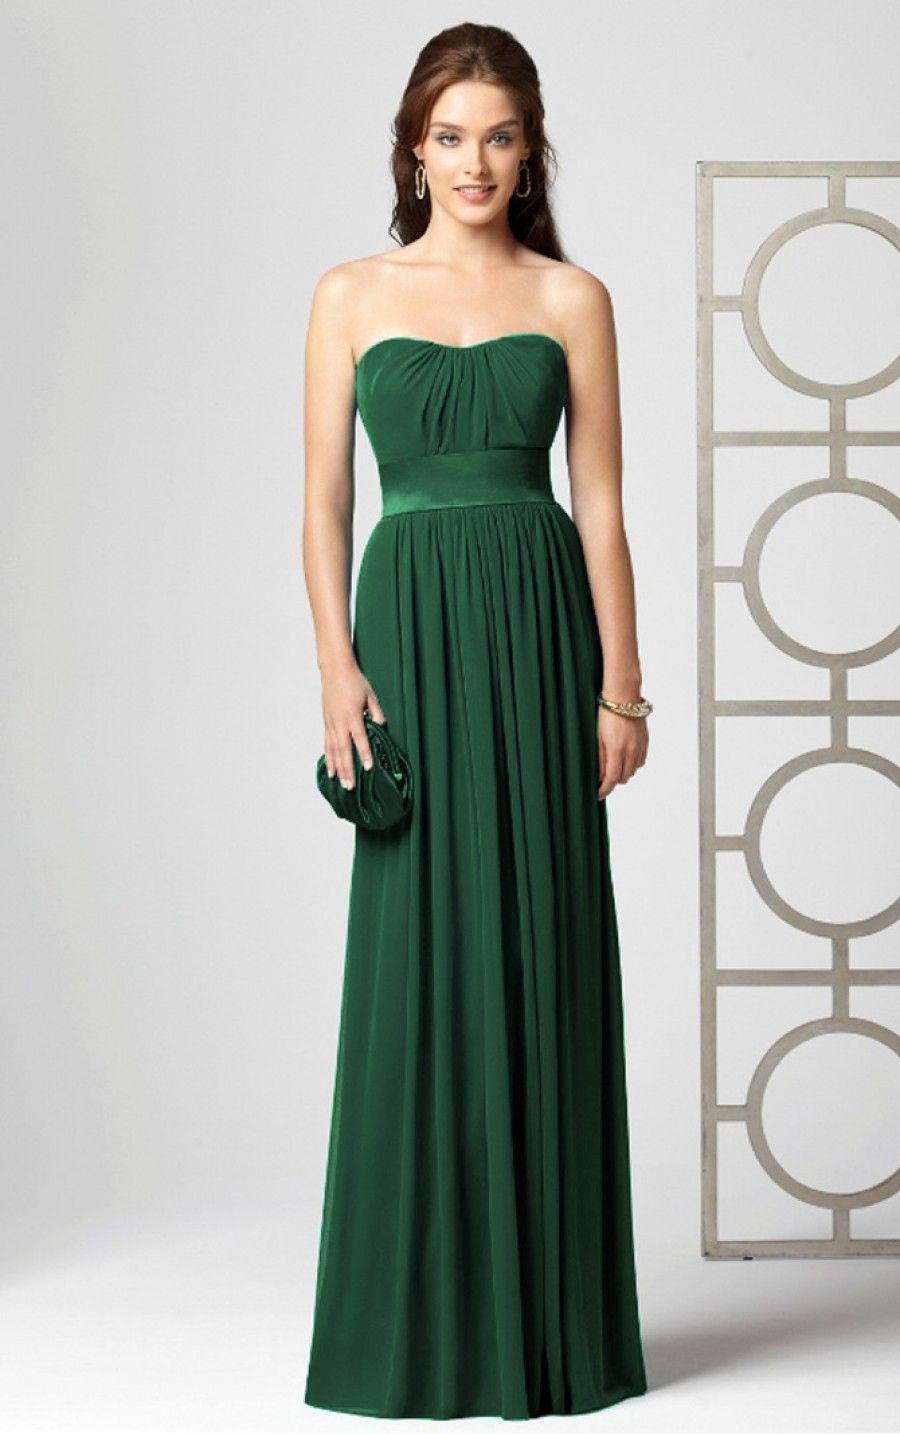 Dark Green Sheath Floor Length Strapless Dress Dresses 10120 191 00